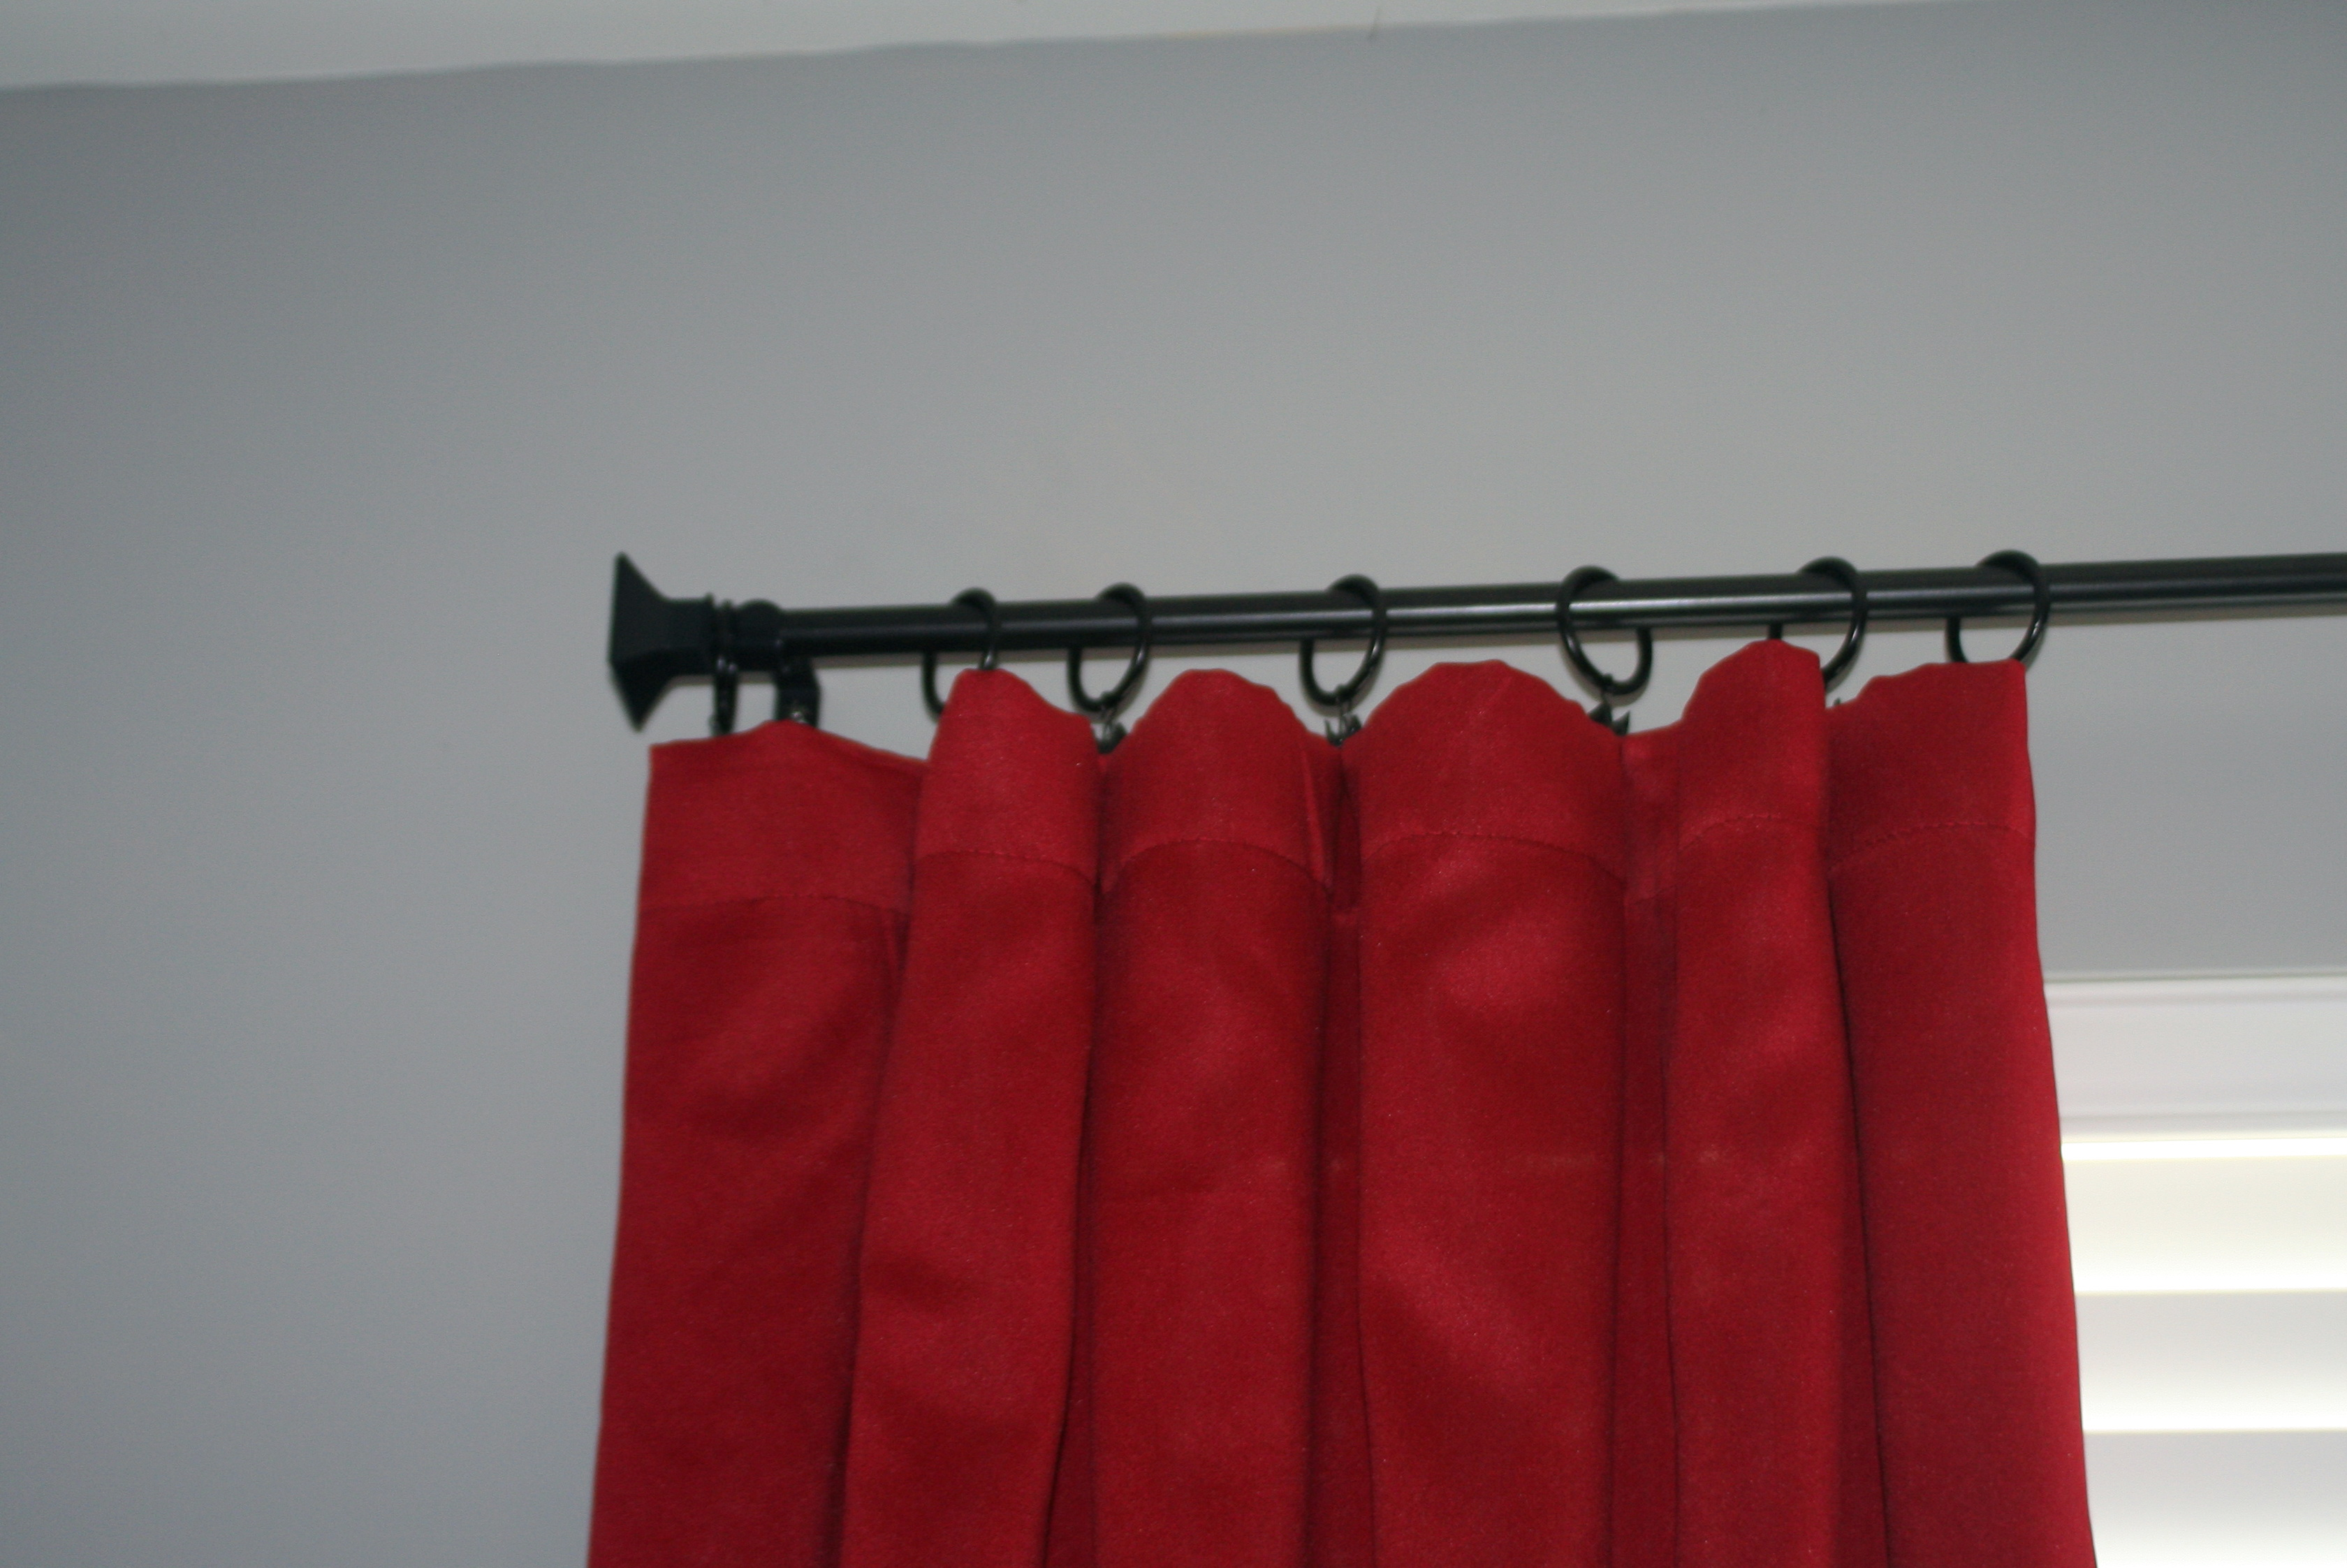 Red Blackout Curtains Walmart Home Design Ideas : red blackout curtains walmart from www.zintaaistars.com size 3360 x 2245 jpeg 1538kB